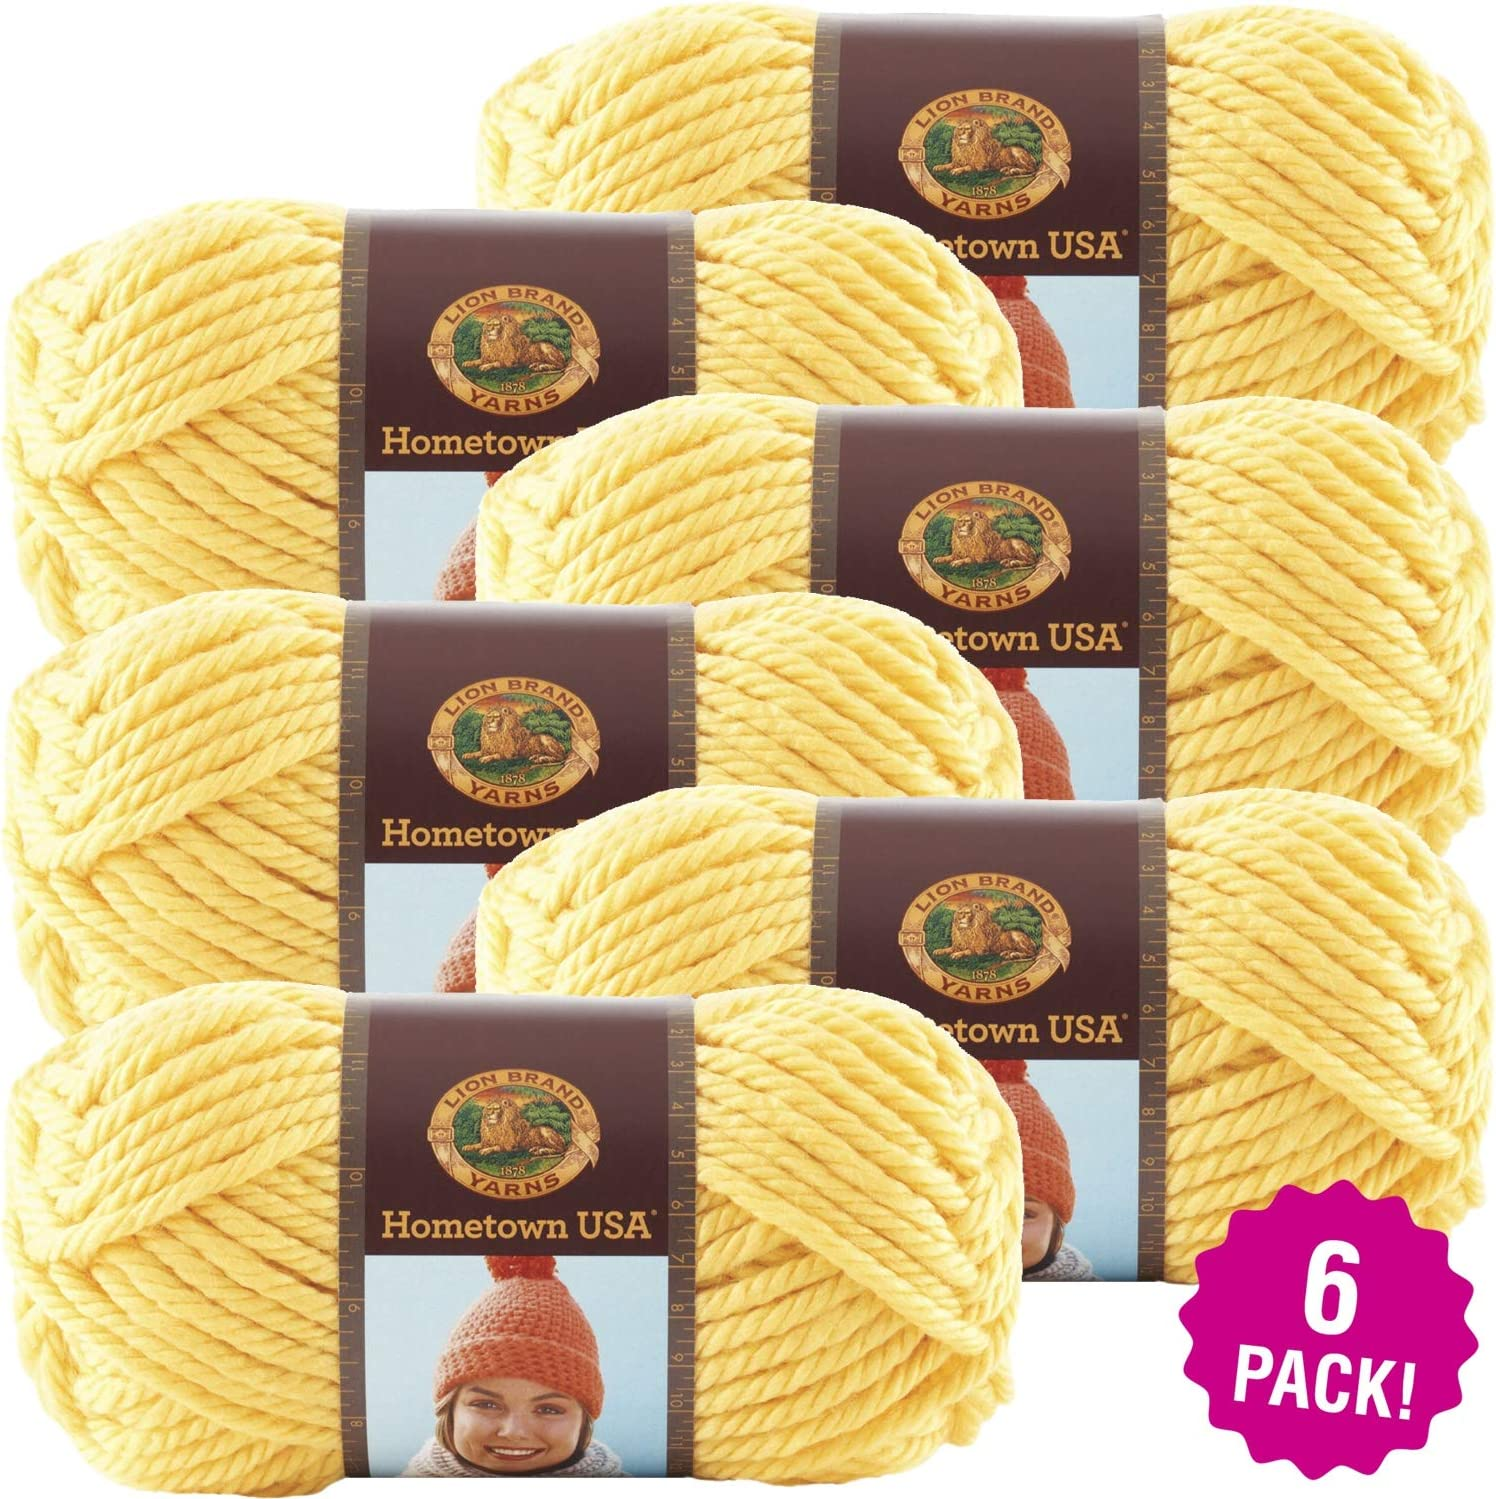 2 skeins Lion Brand Hometown USA Yarn in PITTSBURGH YELLOW